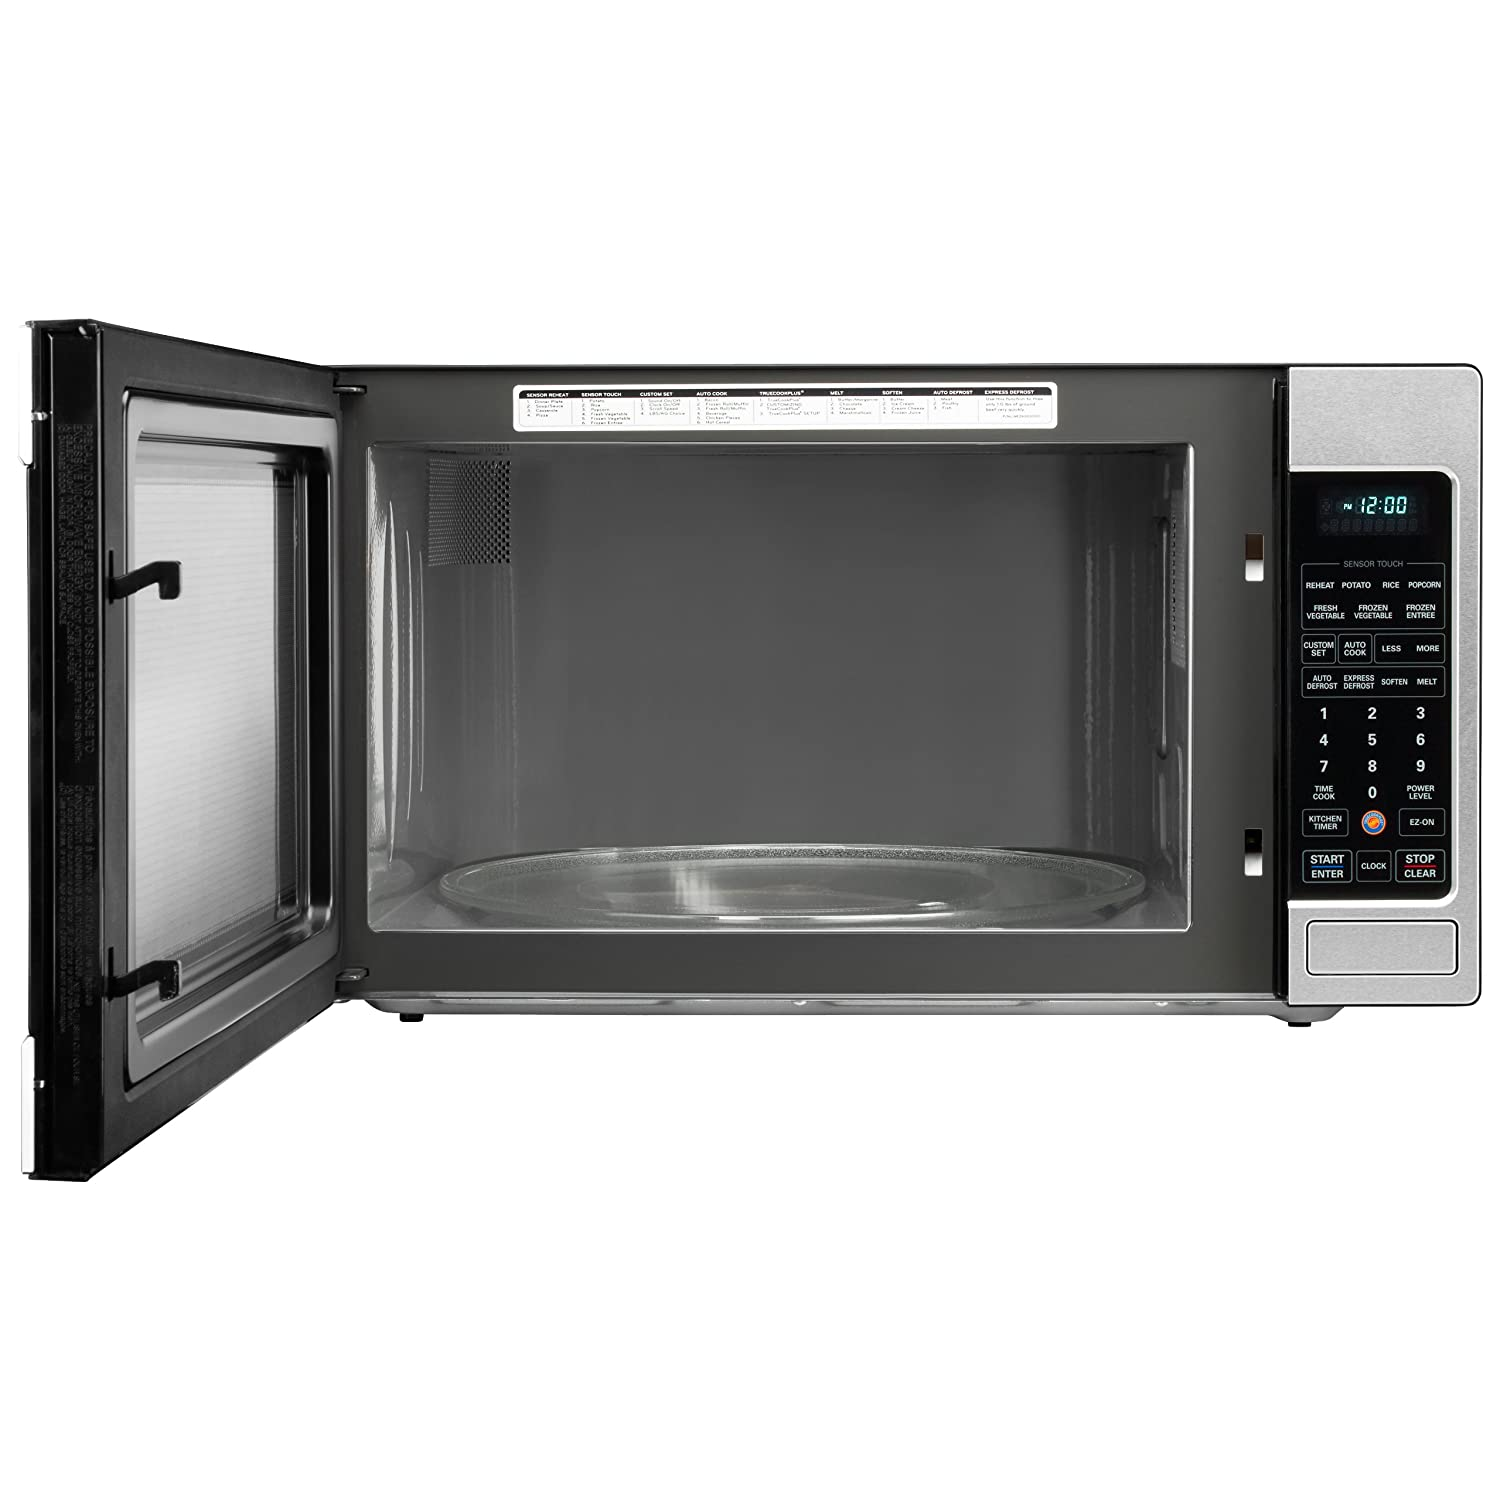 Lg Lcrt2010st 2 0 Cu Ft Counter Top Microwave Oven With True Cook Plus And Ez Clean Oven